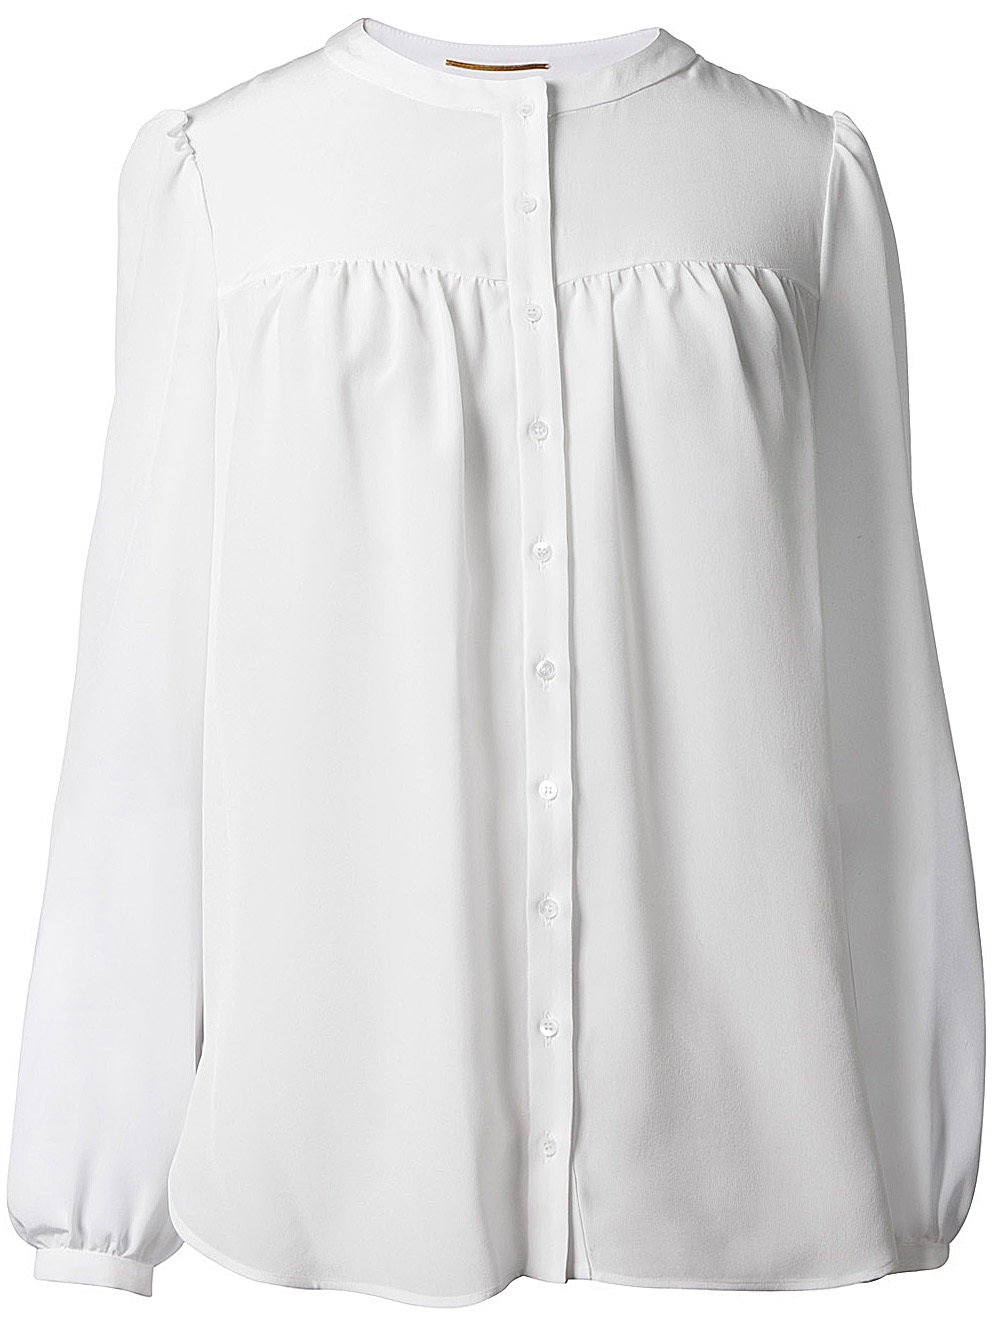 Saint laurent Long Sleeve Blouse in White | Lyst